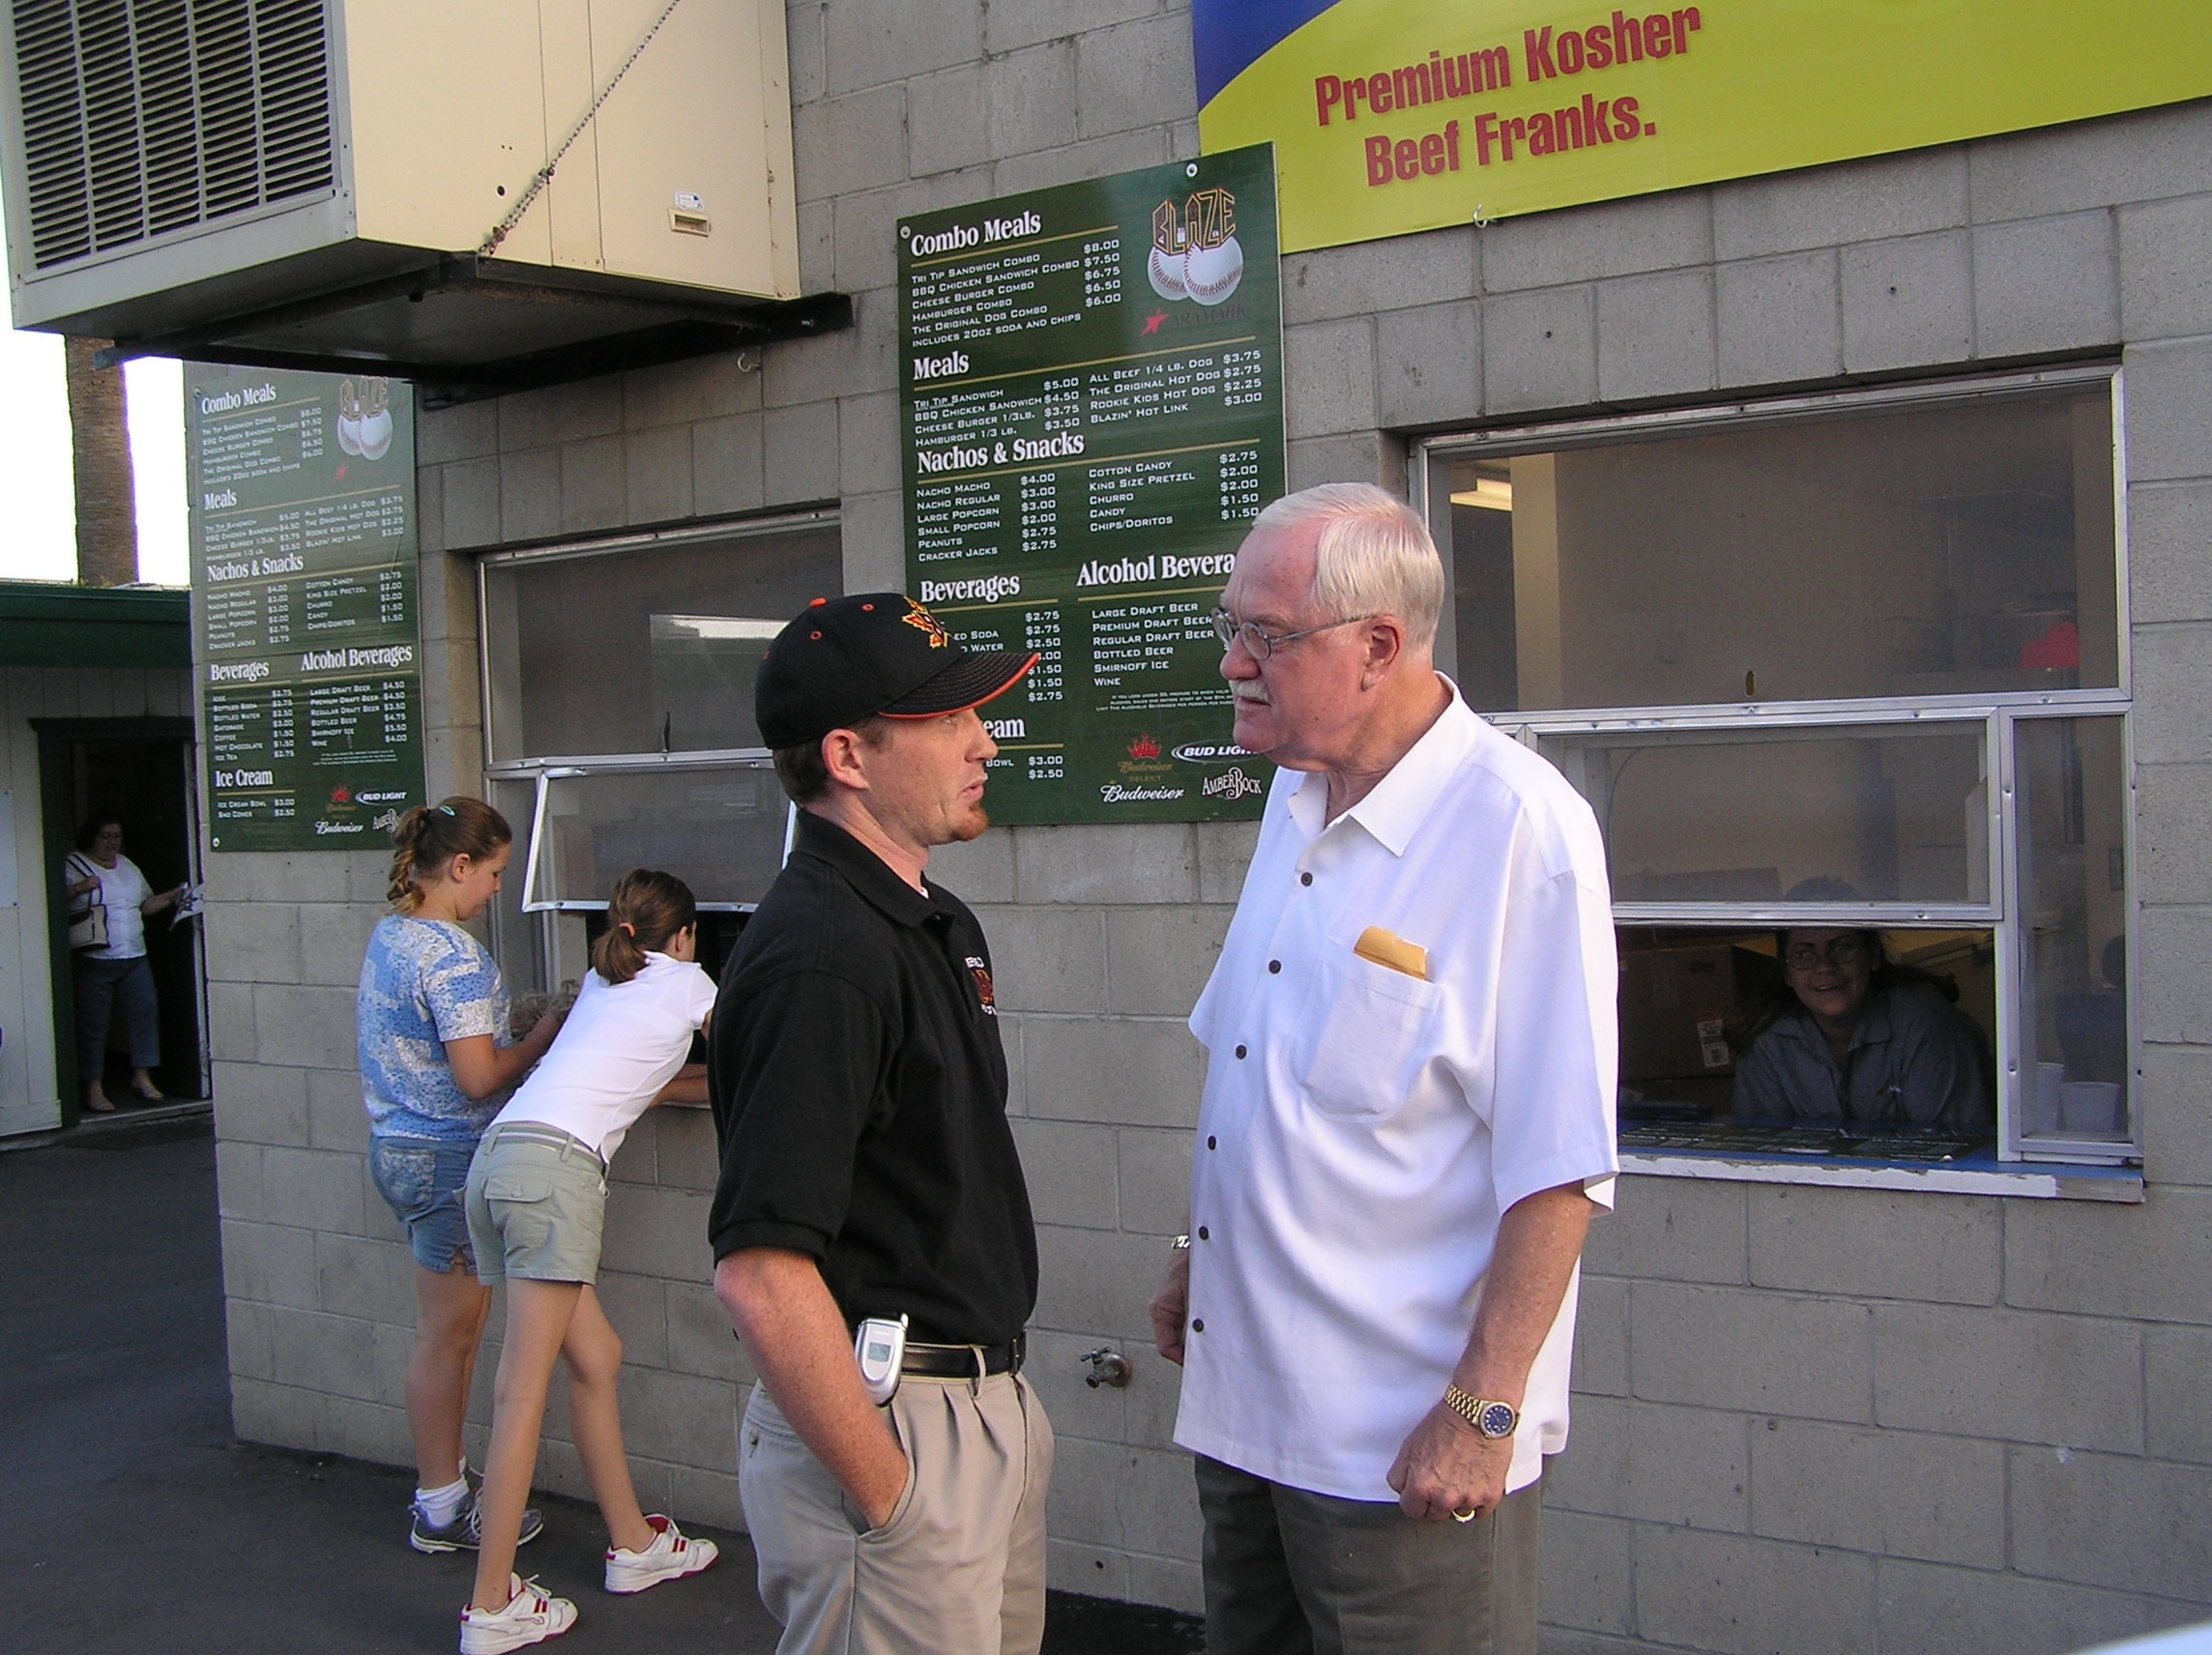 Brian and former Bakersfield mayor Harvey Hall talking baseball at a Bakersfield Blaze game.